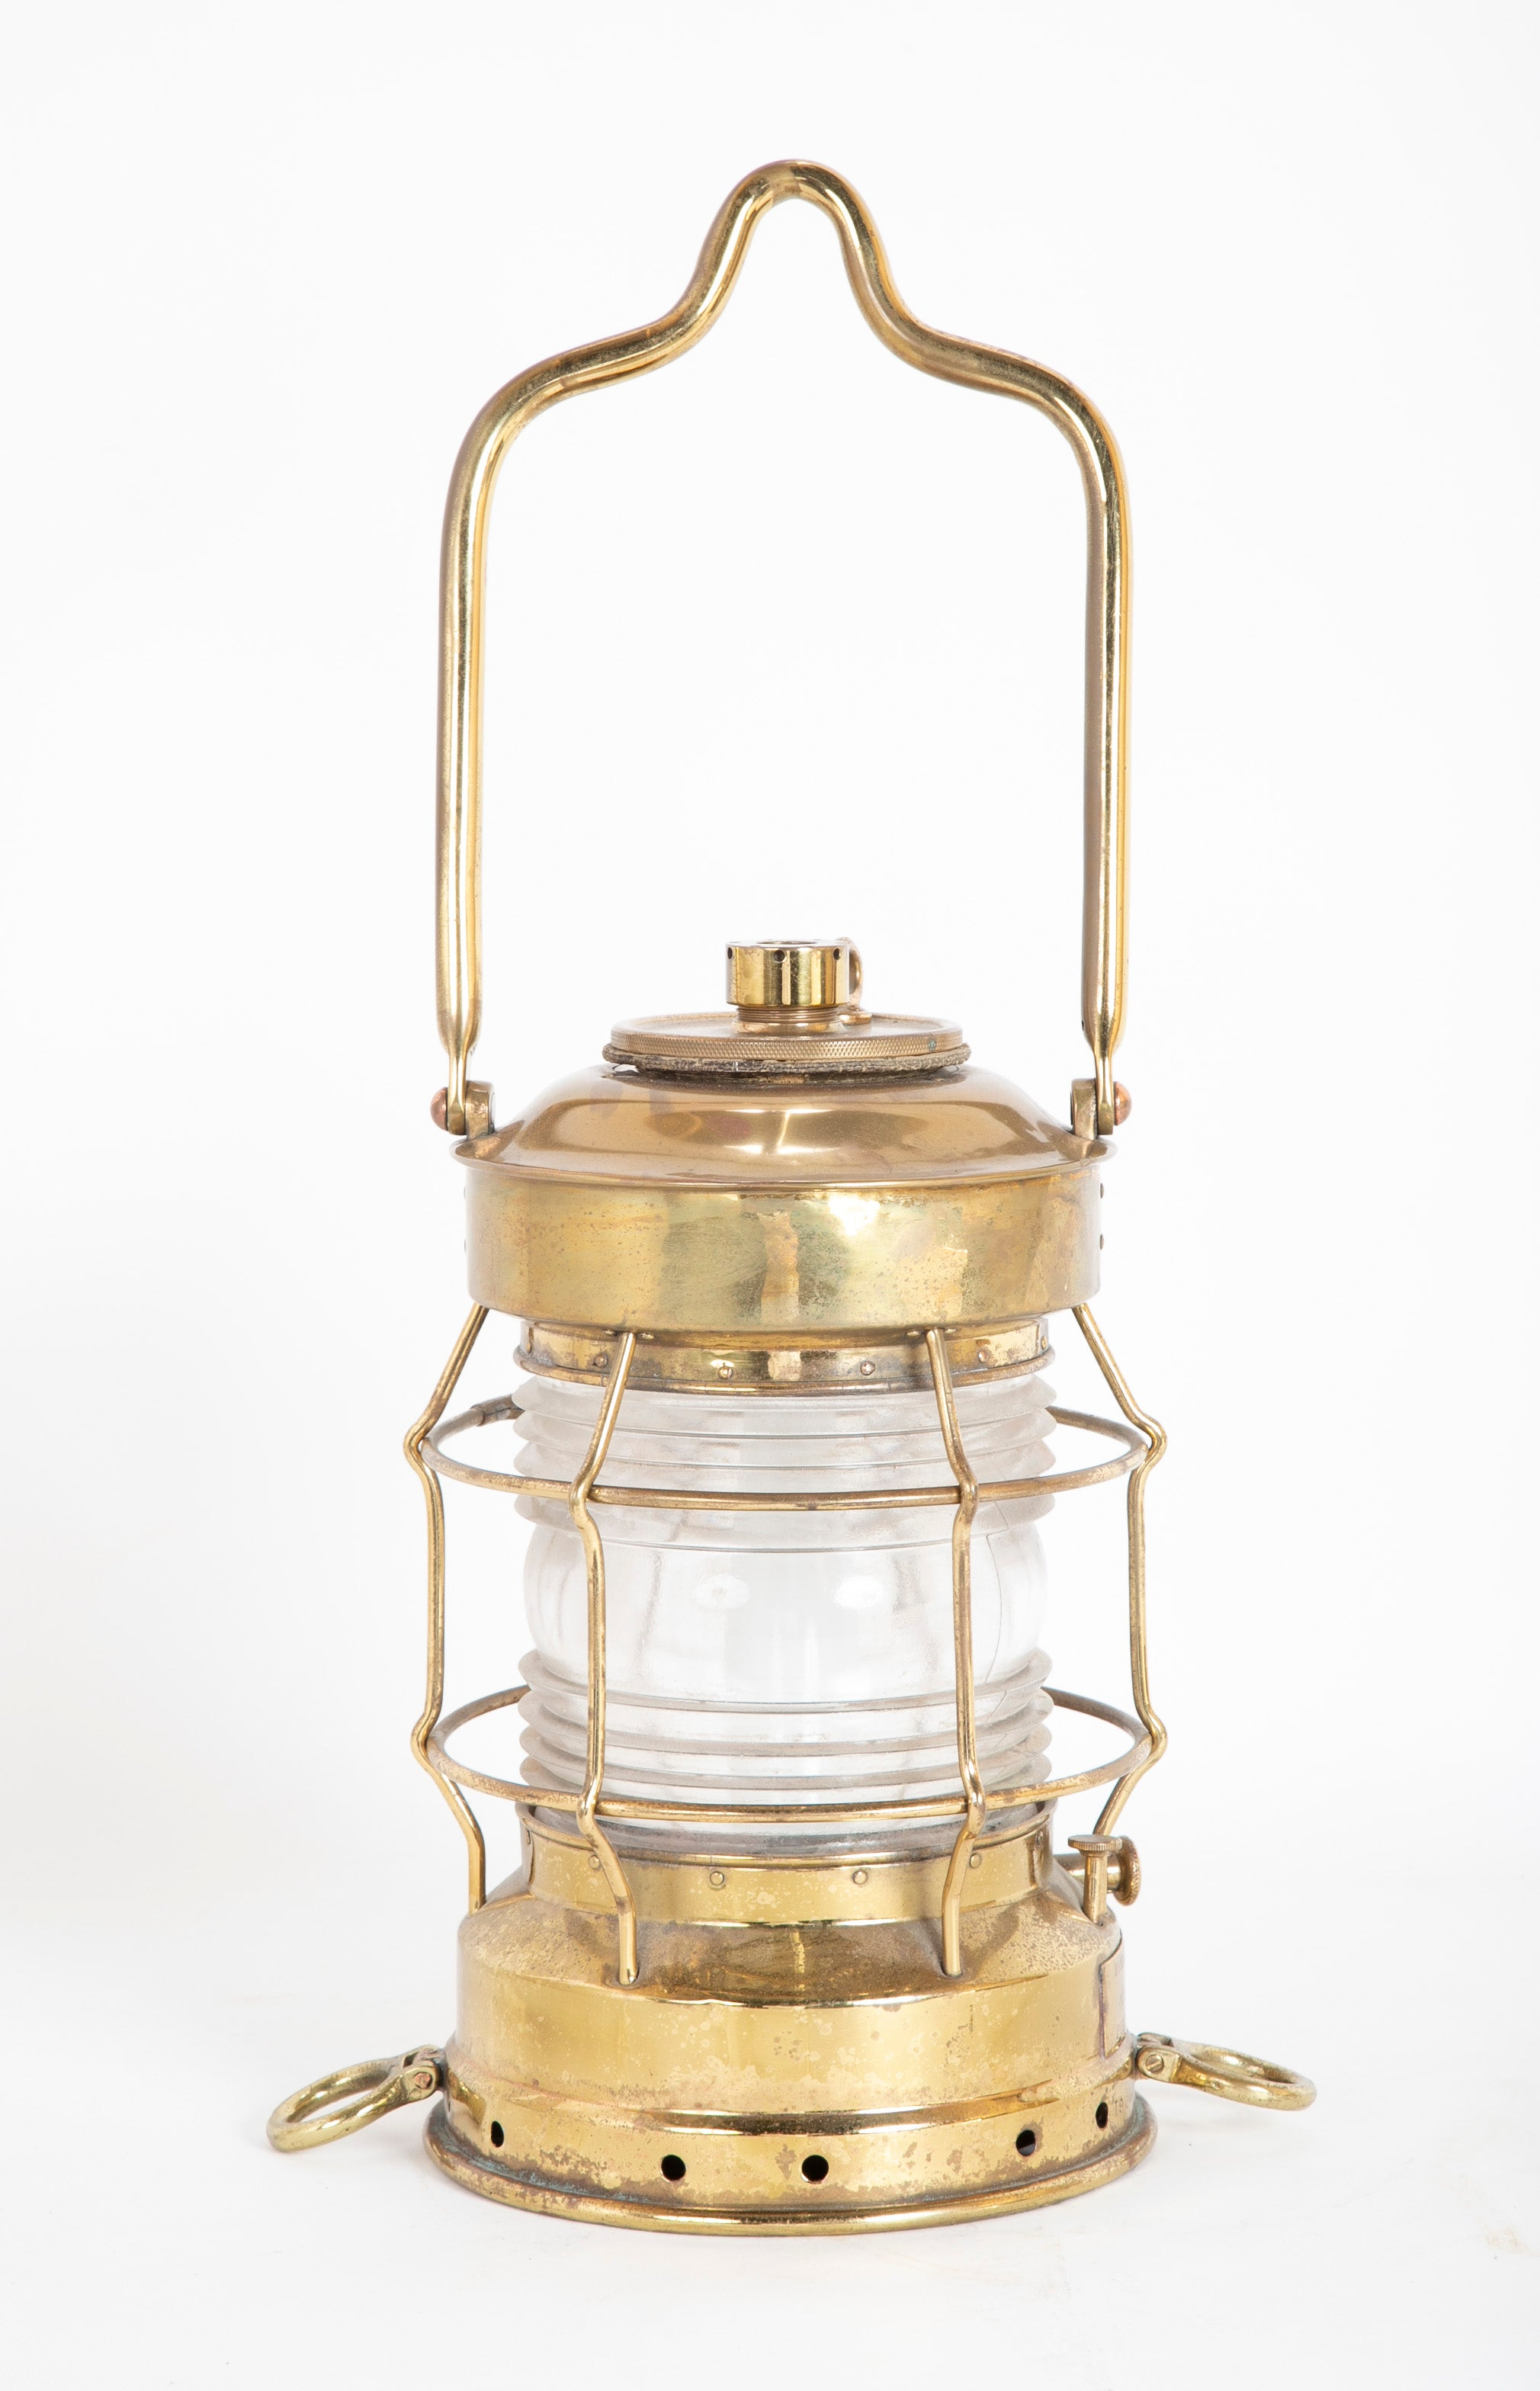 Rare Long Handled Brass Ship's Masthead Lantern